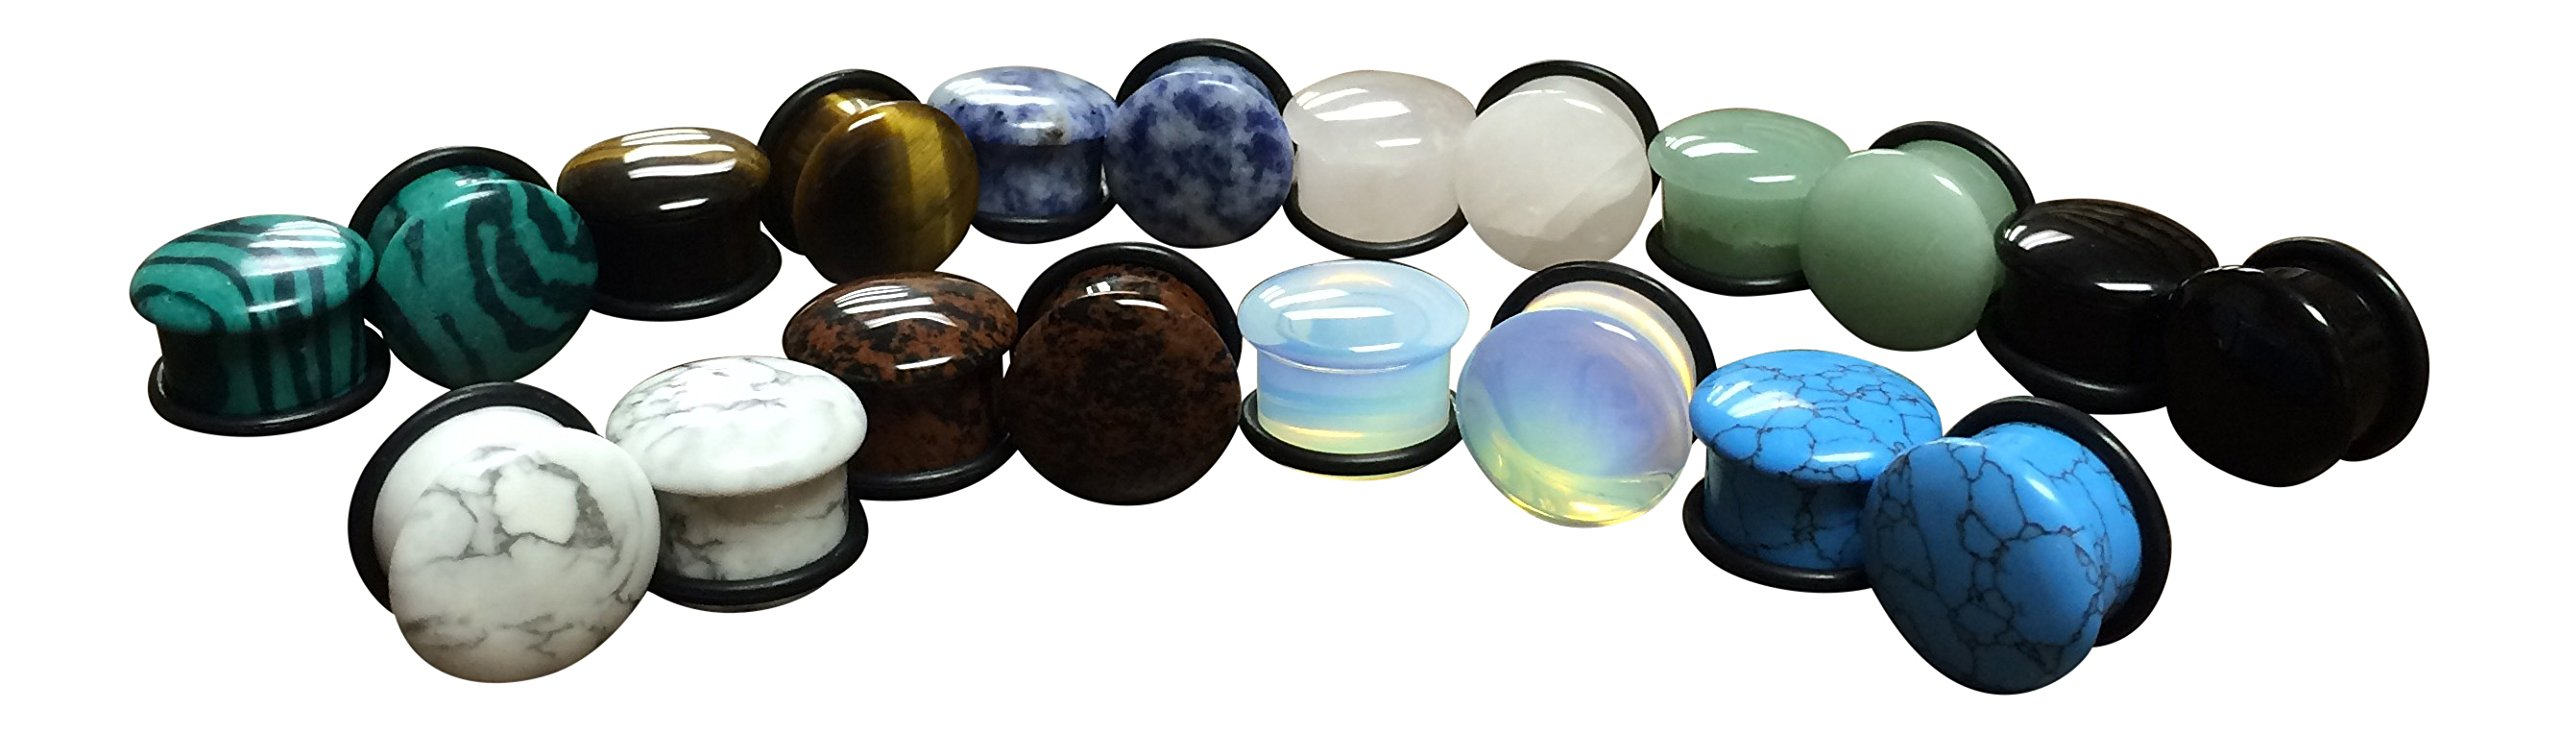 Lobal Domination -All 10 Pair- Stone Plugs Organic Single Flare with O-Rings Ear Gauges Body Jewelry (lot 1) (5/8'' (16mm)) by Lobal Domination